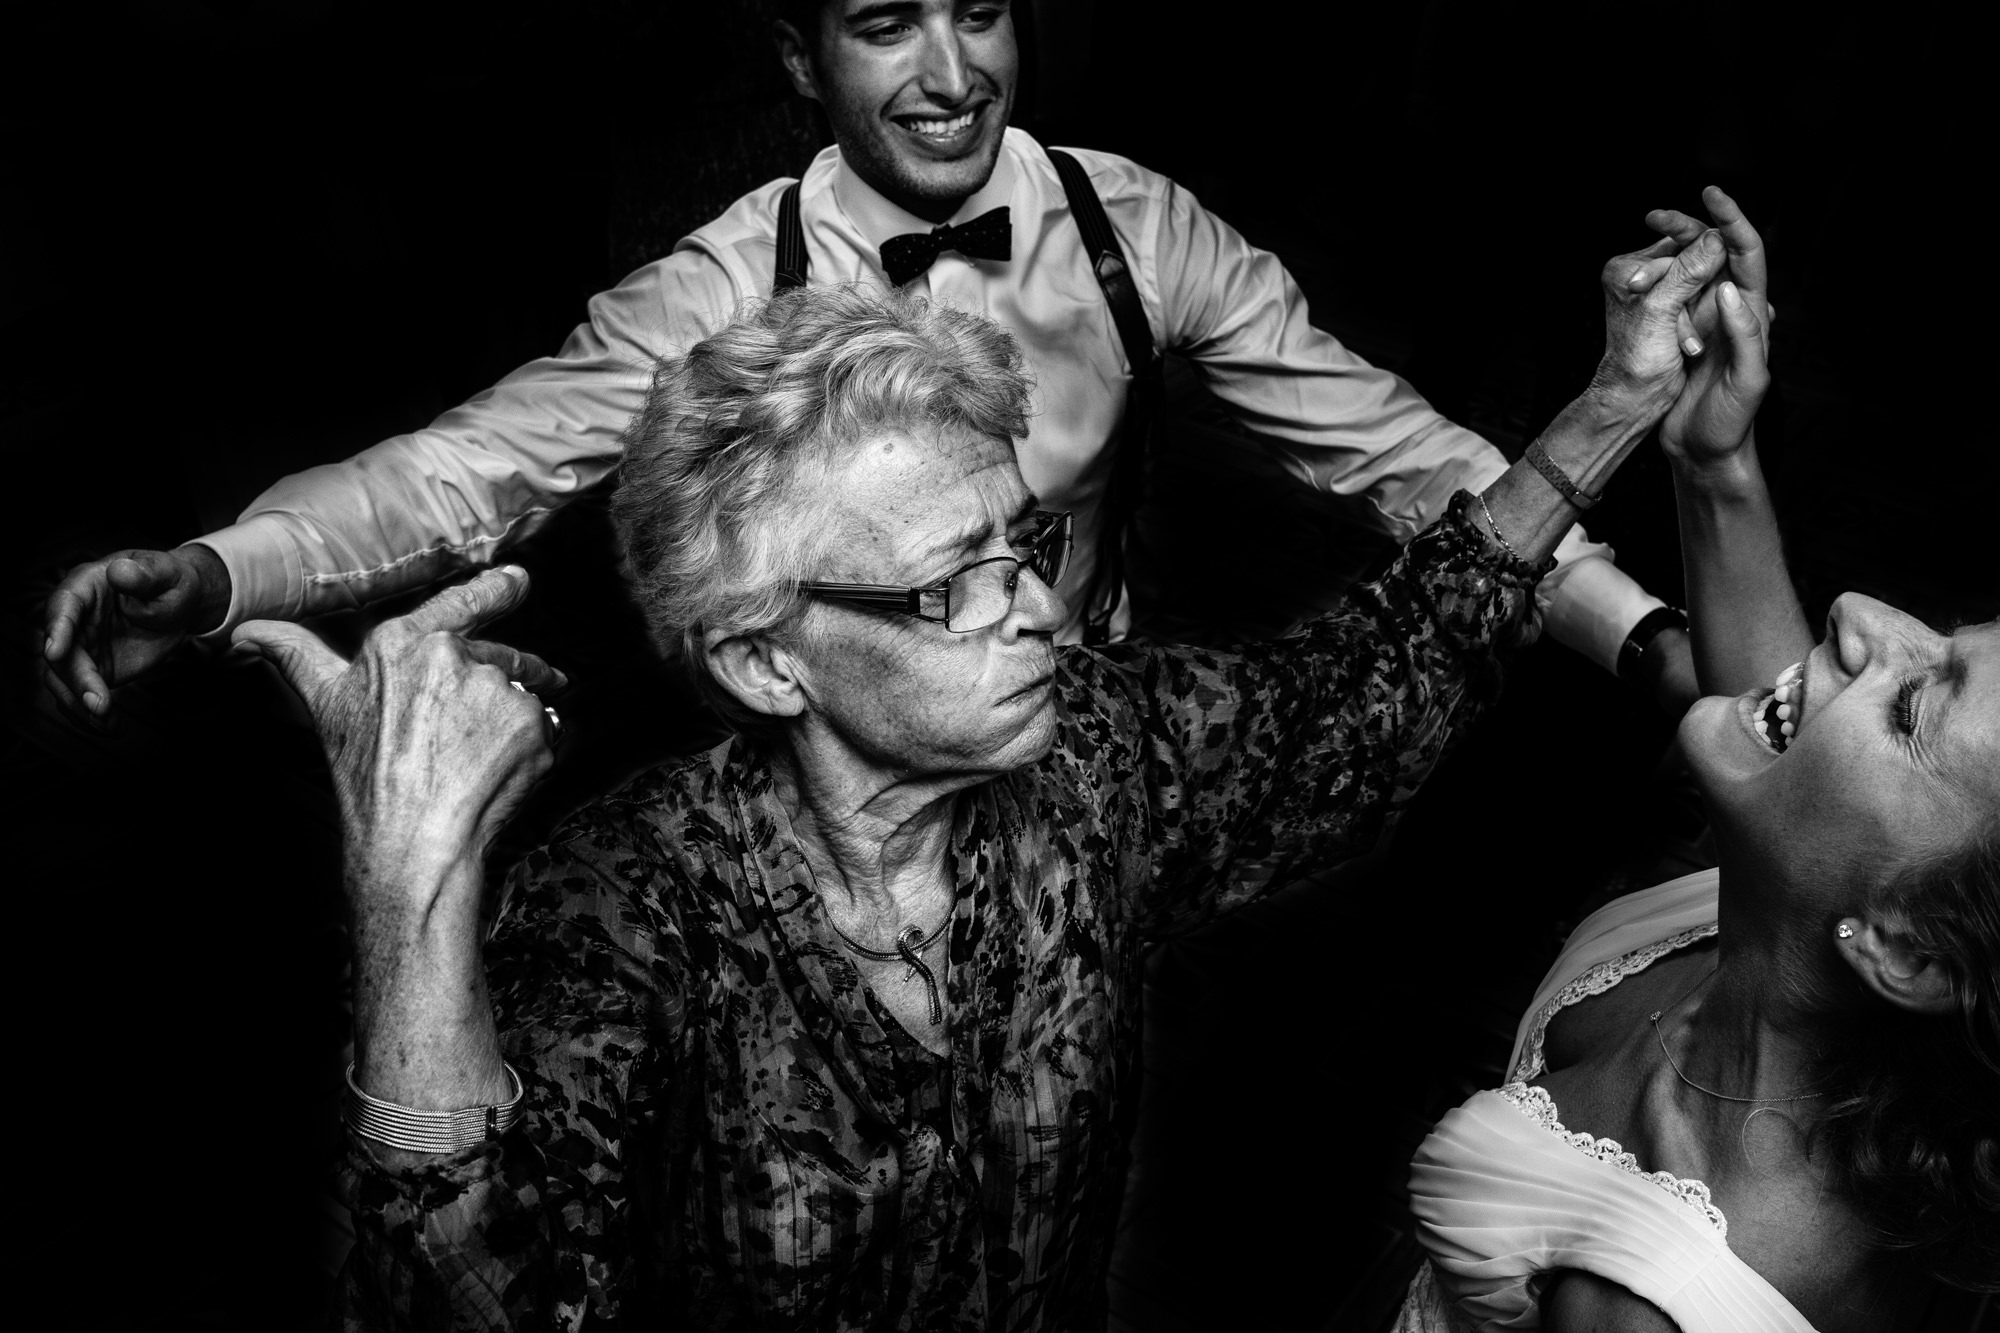 Grandma busts a move with bride and groom Yves Schepers Belgium wedding photographers